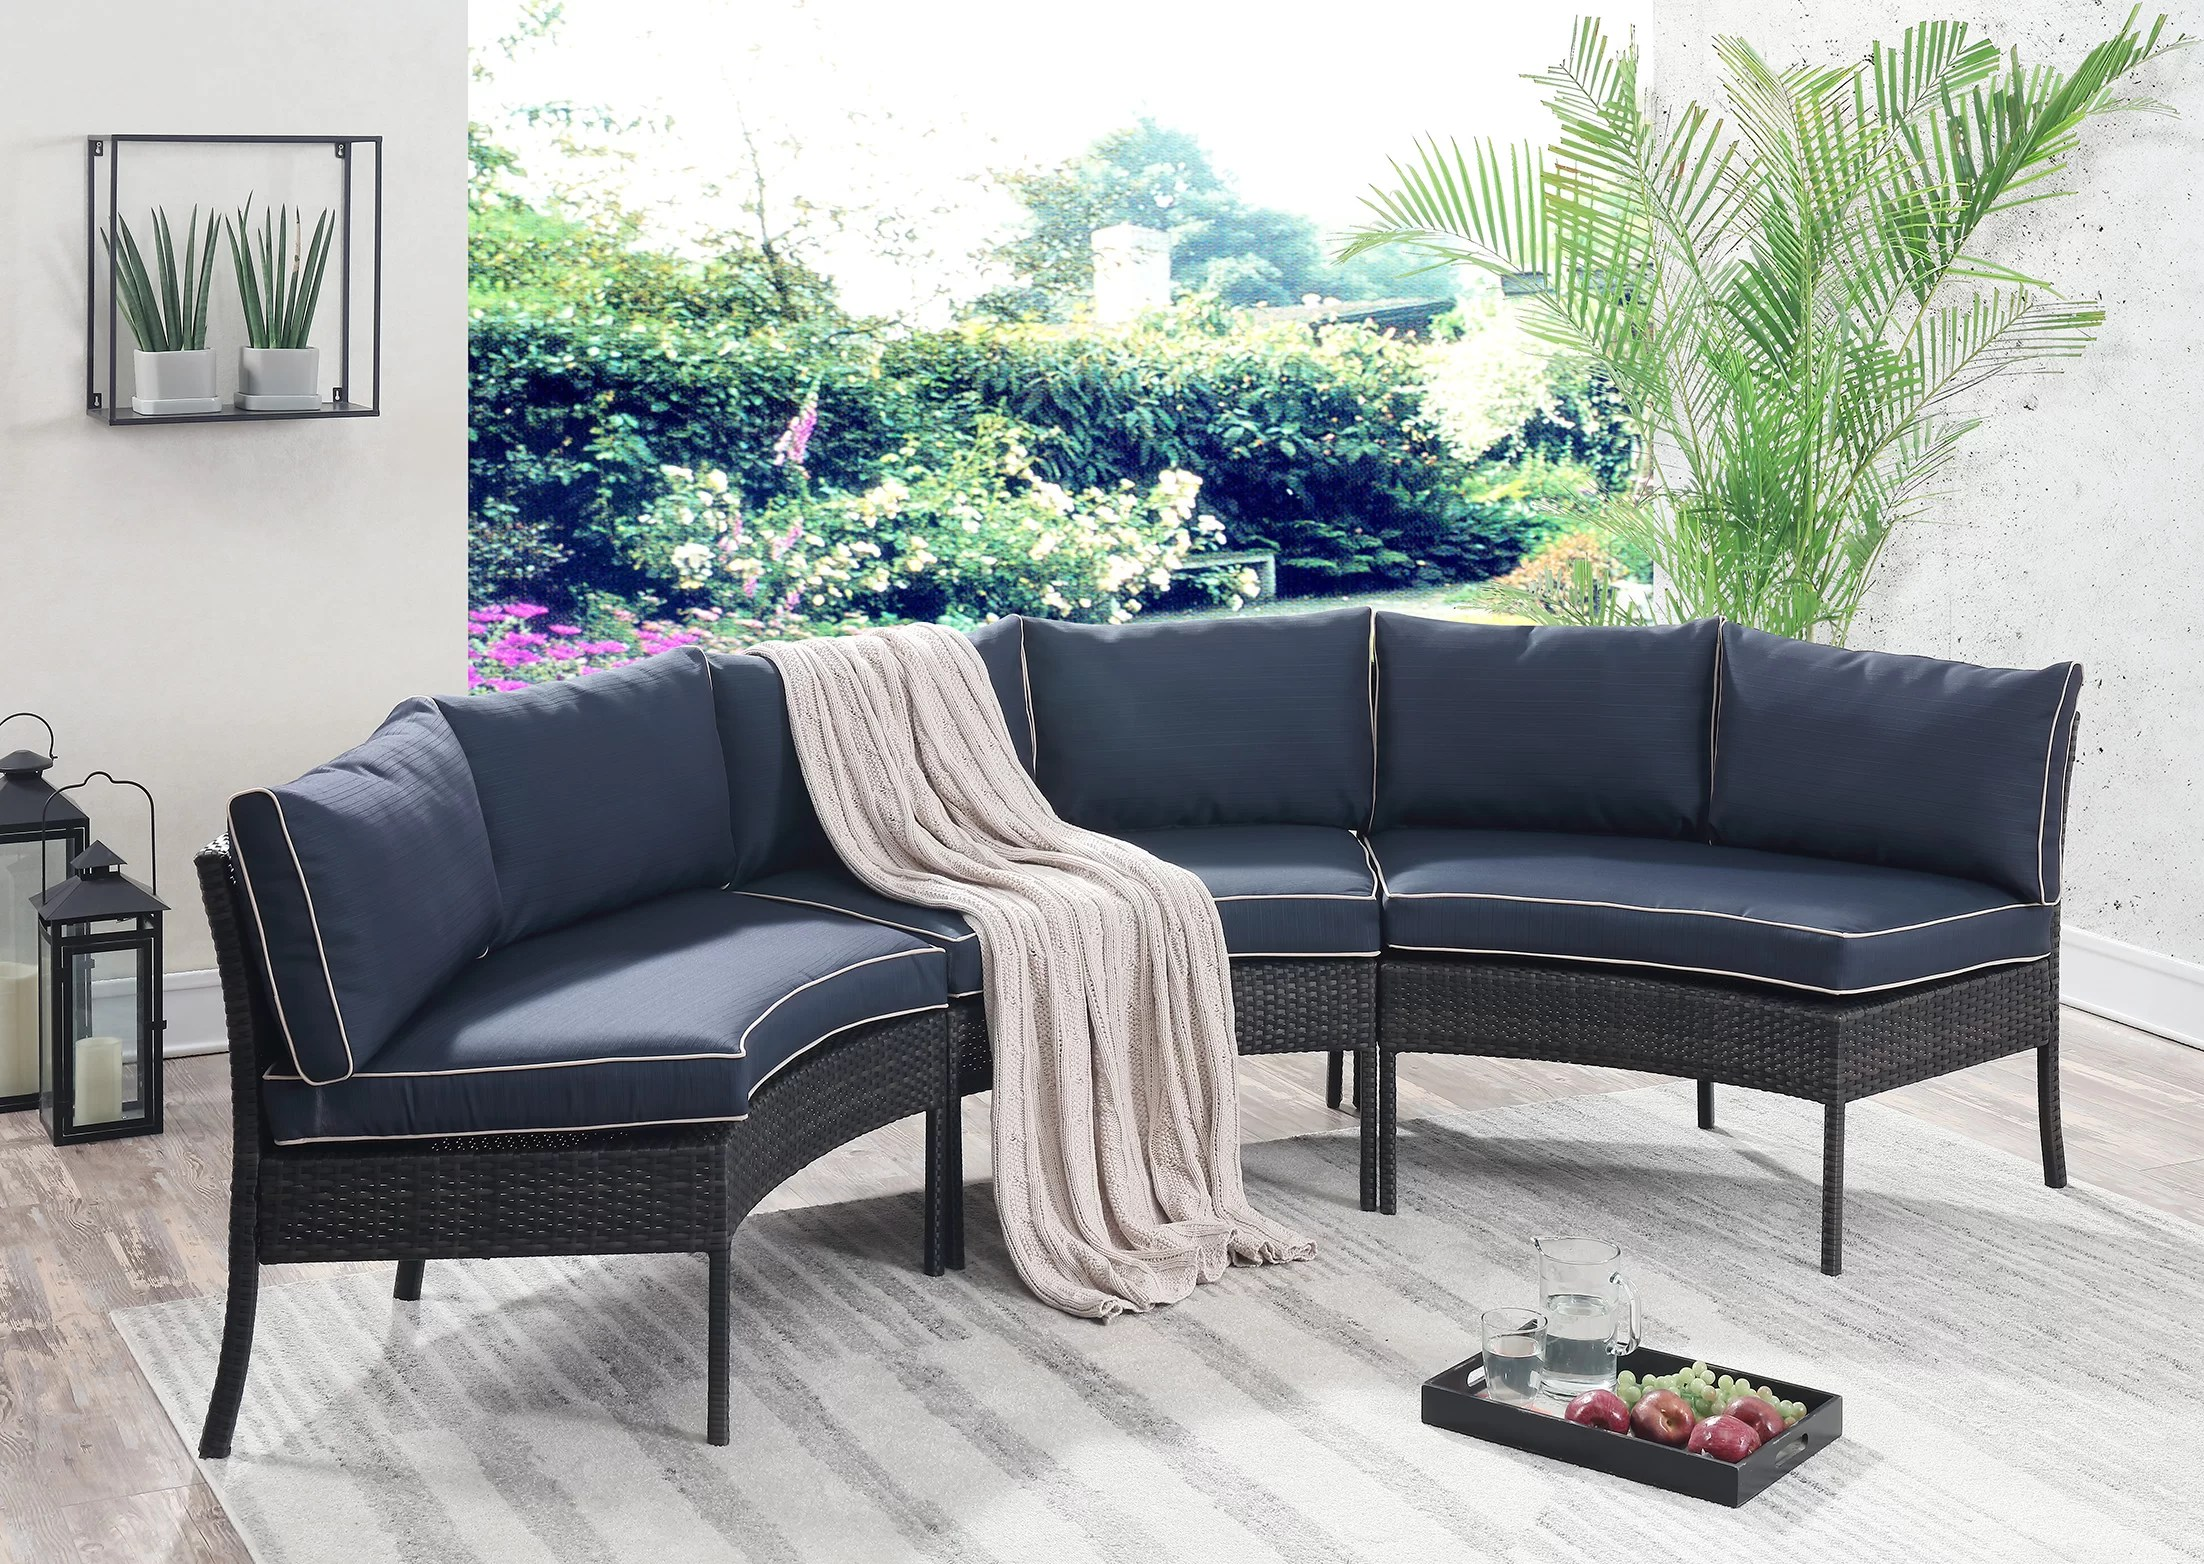 Outdoor Couch Petunia Circular Patio Sectional With Cushions